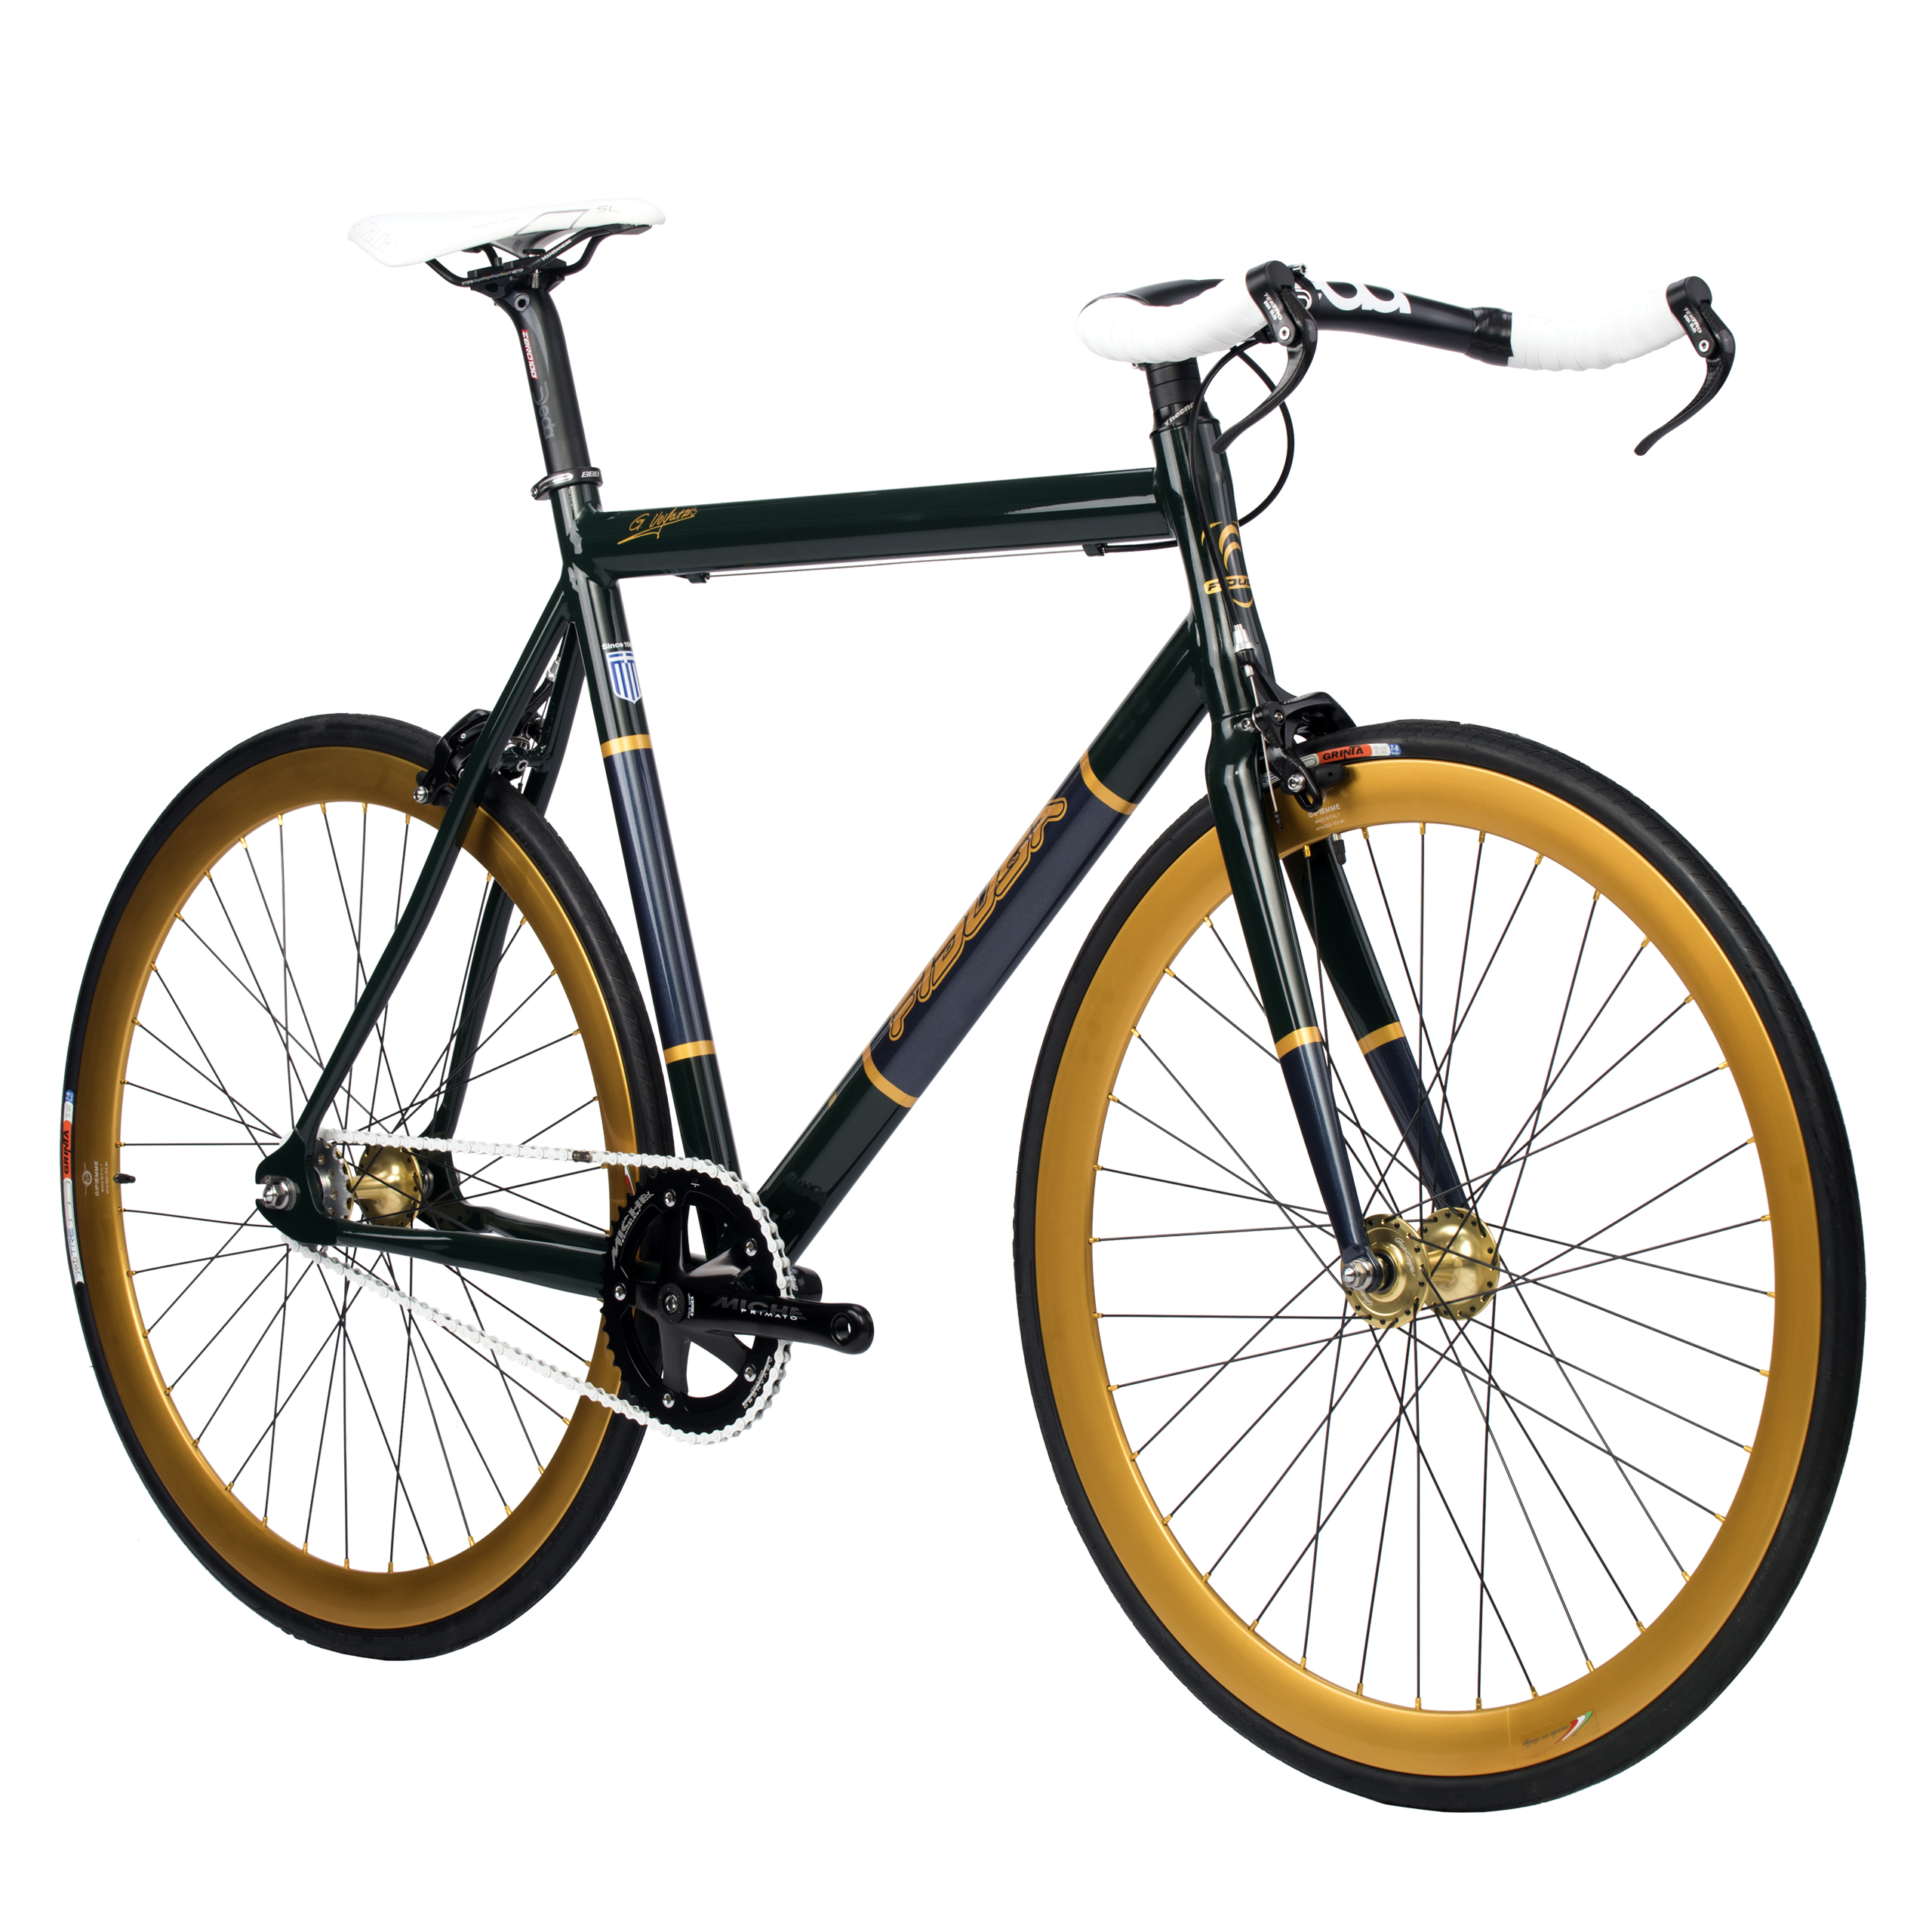 alloy-single-speed-bicycle7 Ποδήλατα